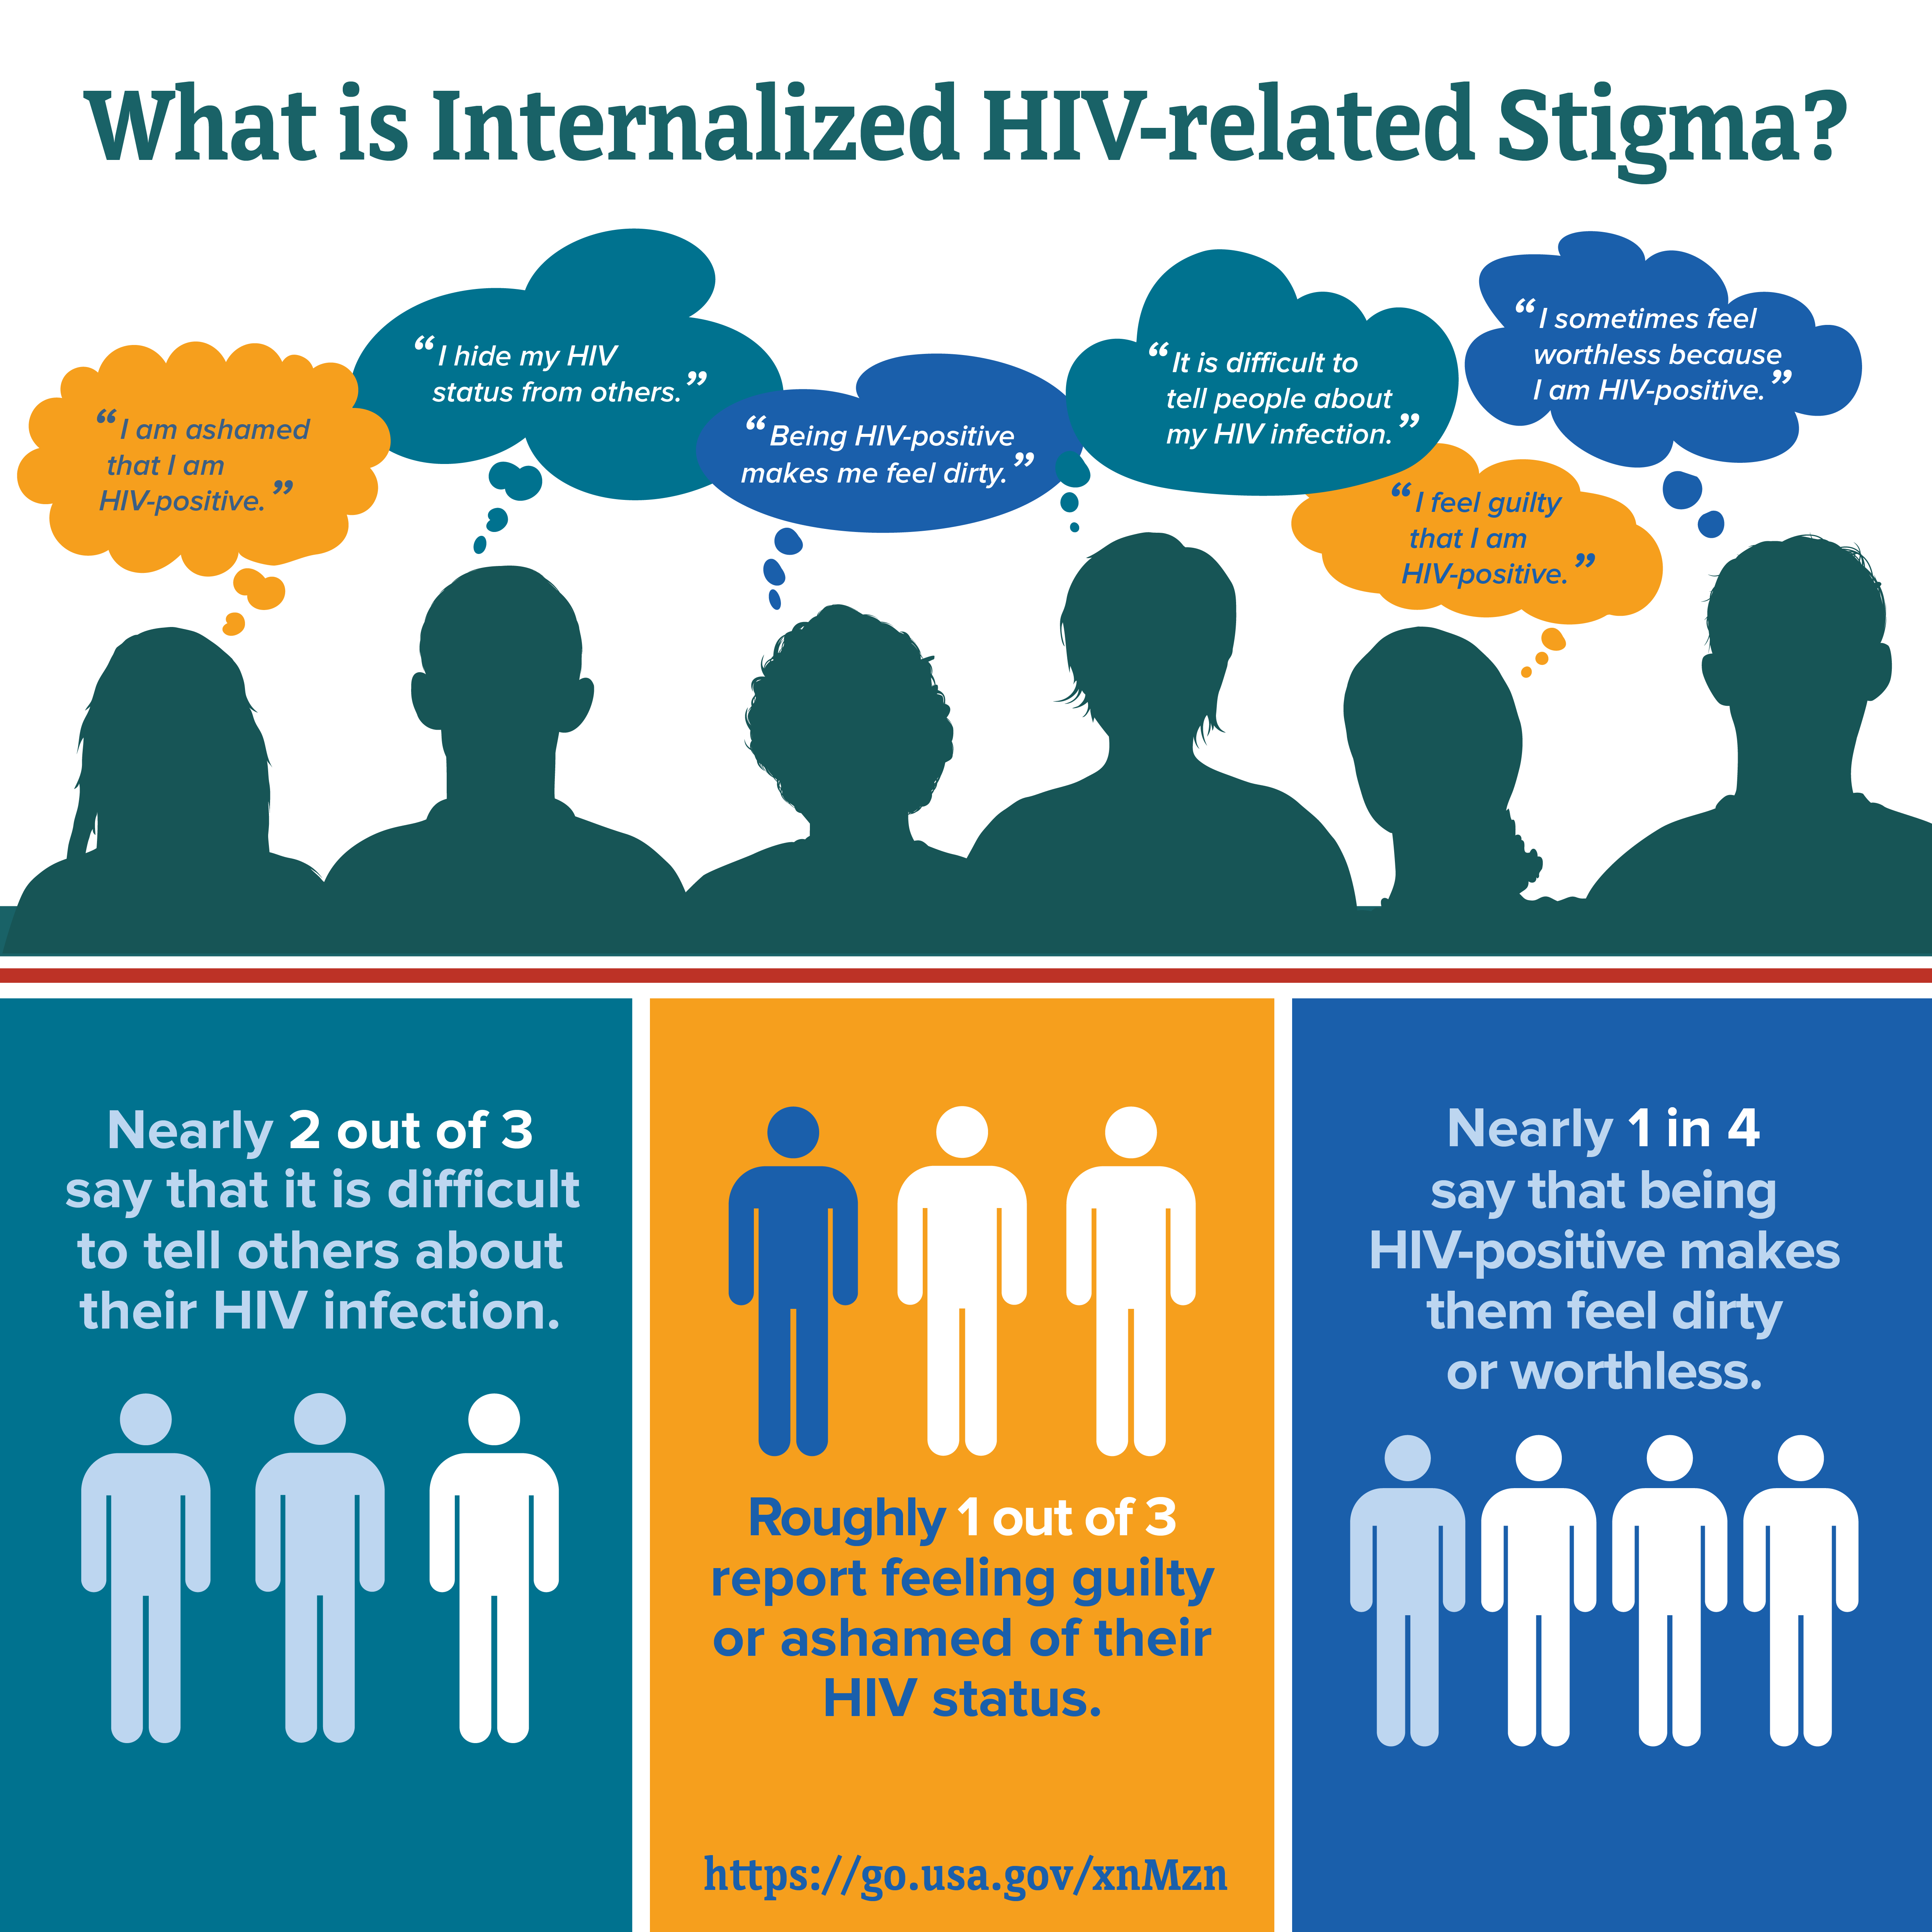 aids related stigma Hiv-related stigma is made more complicated when individuals also experience stigma related to substance use, mental health, sexual orientation, gender identity, race/ethnicity, or sex work legal protections for people living with hiv and aids.